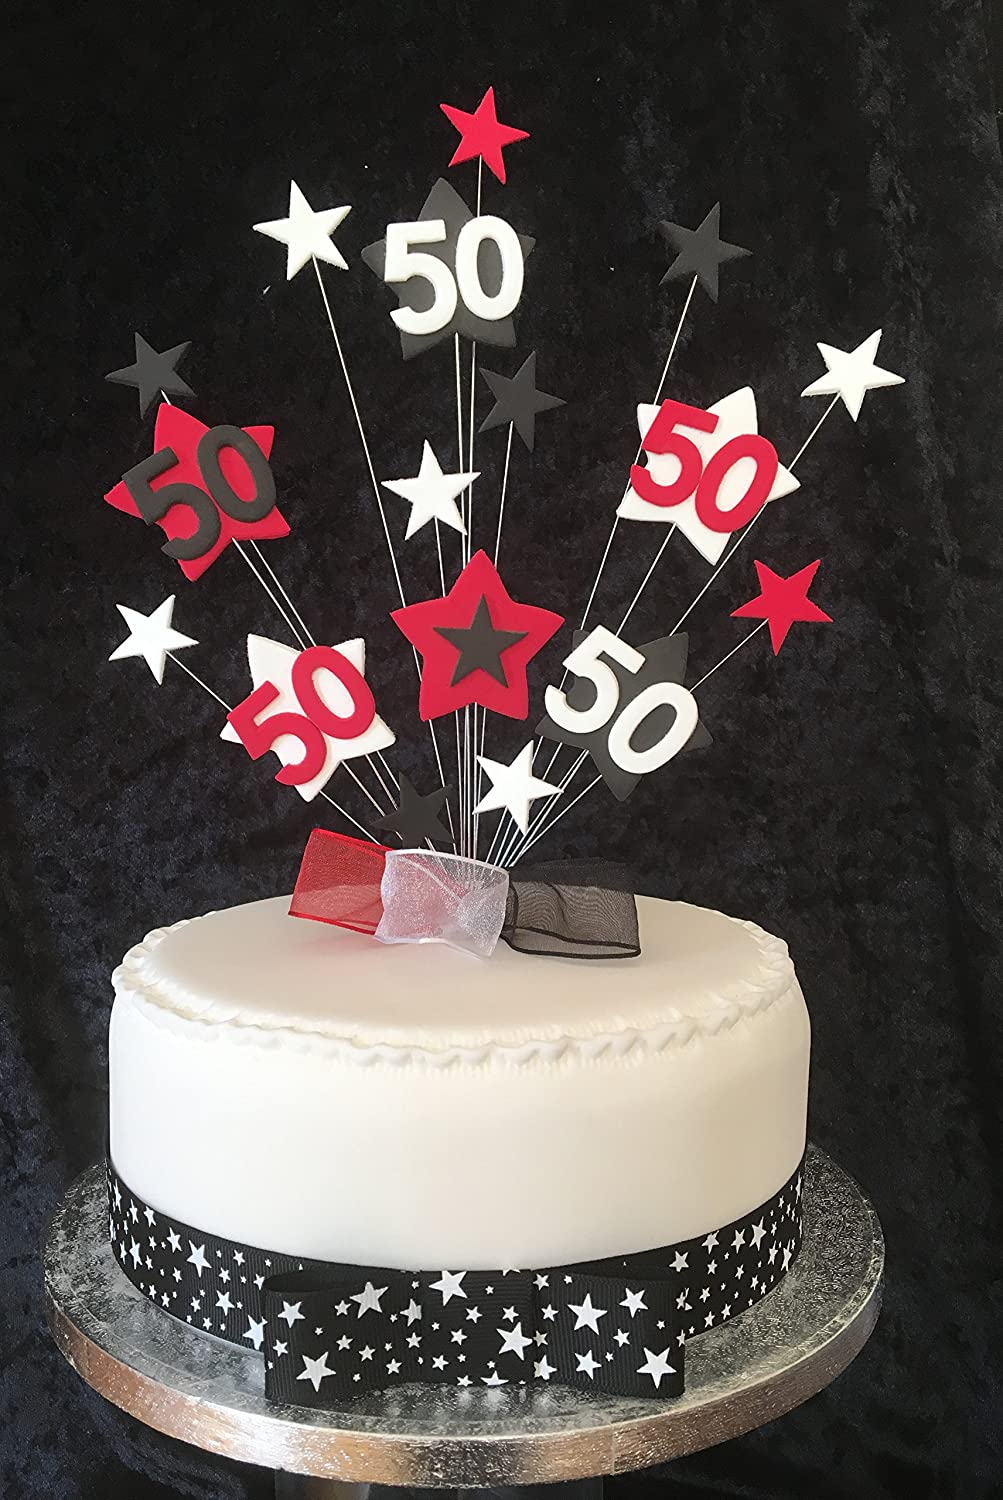 Marvelous 50Th Birthday Cake Topper Red Black And White Stars Plus 1 X Funny Birthday Cards Online Inifodamsfinfo